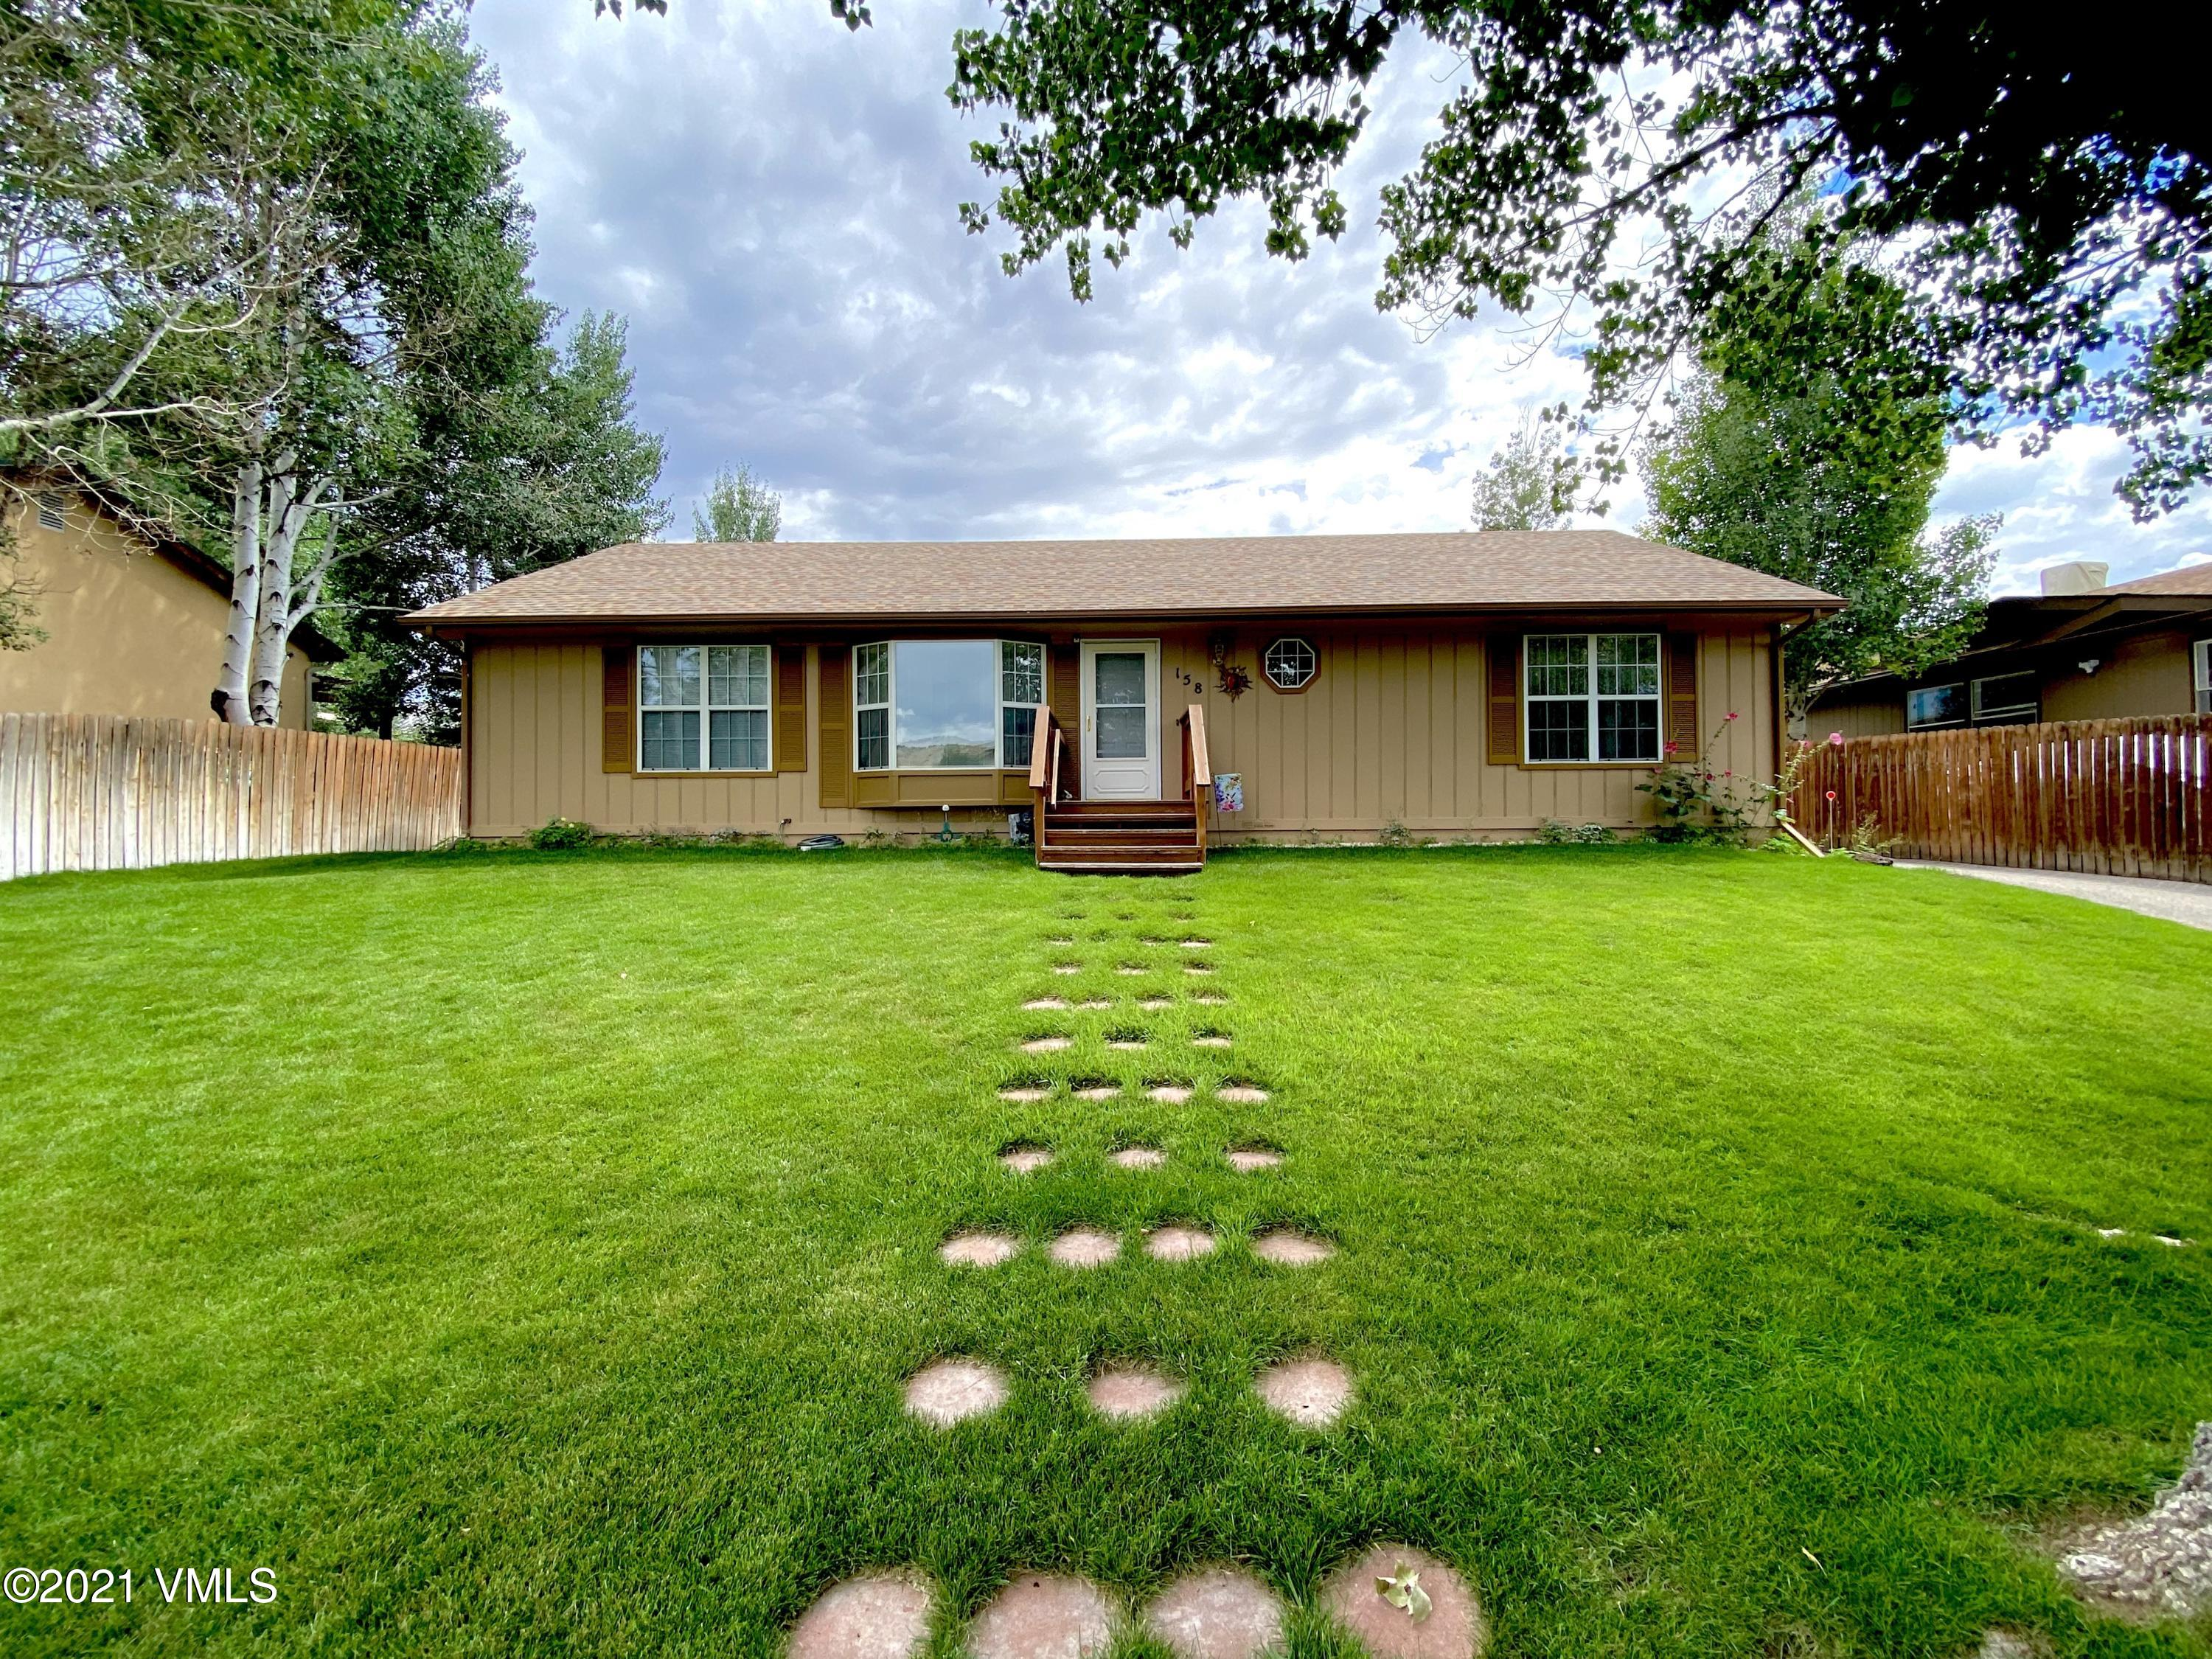 Immaculate single family home located in Gypsum. This 3 bed 2 bath home has a new roof, granite countertops, hardwood floors and a large front yard perfect for entertaining or enjoying the warm summer months. Priced to sell this home will not be on the market long.